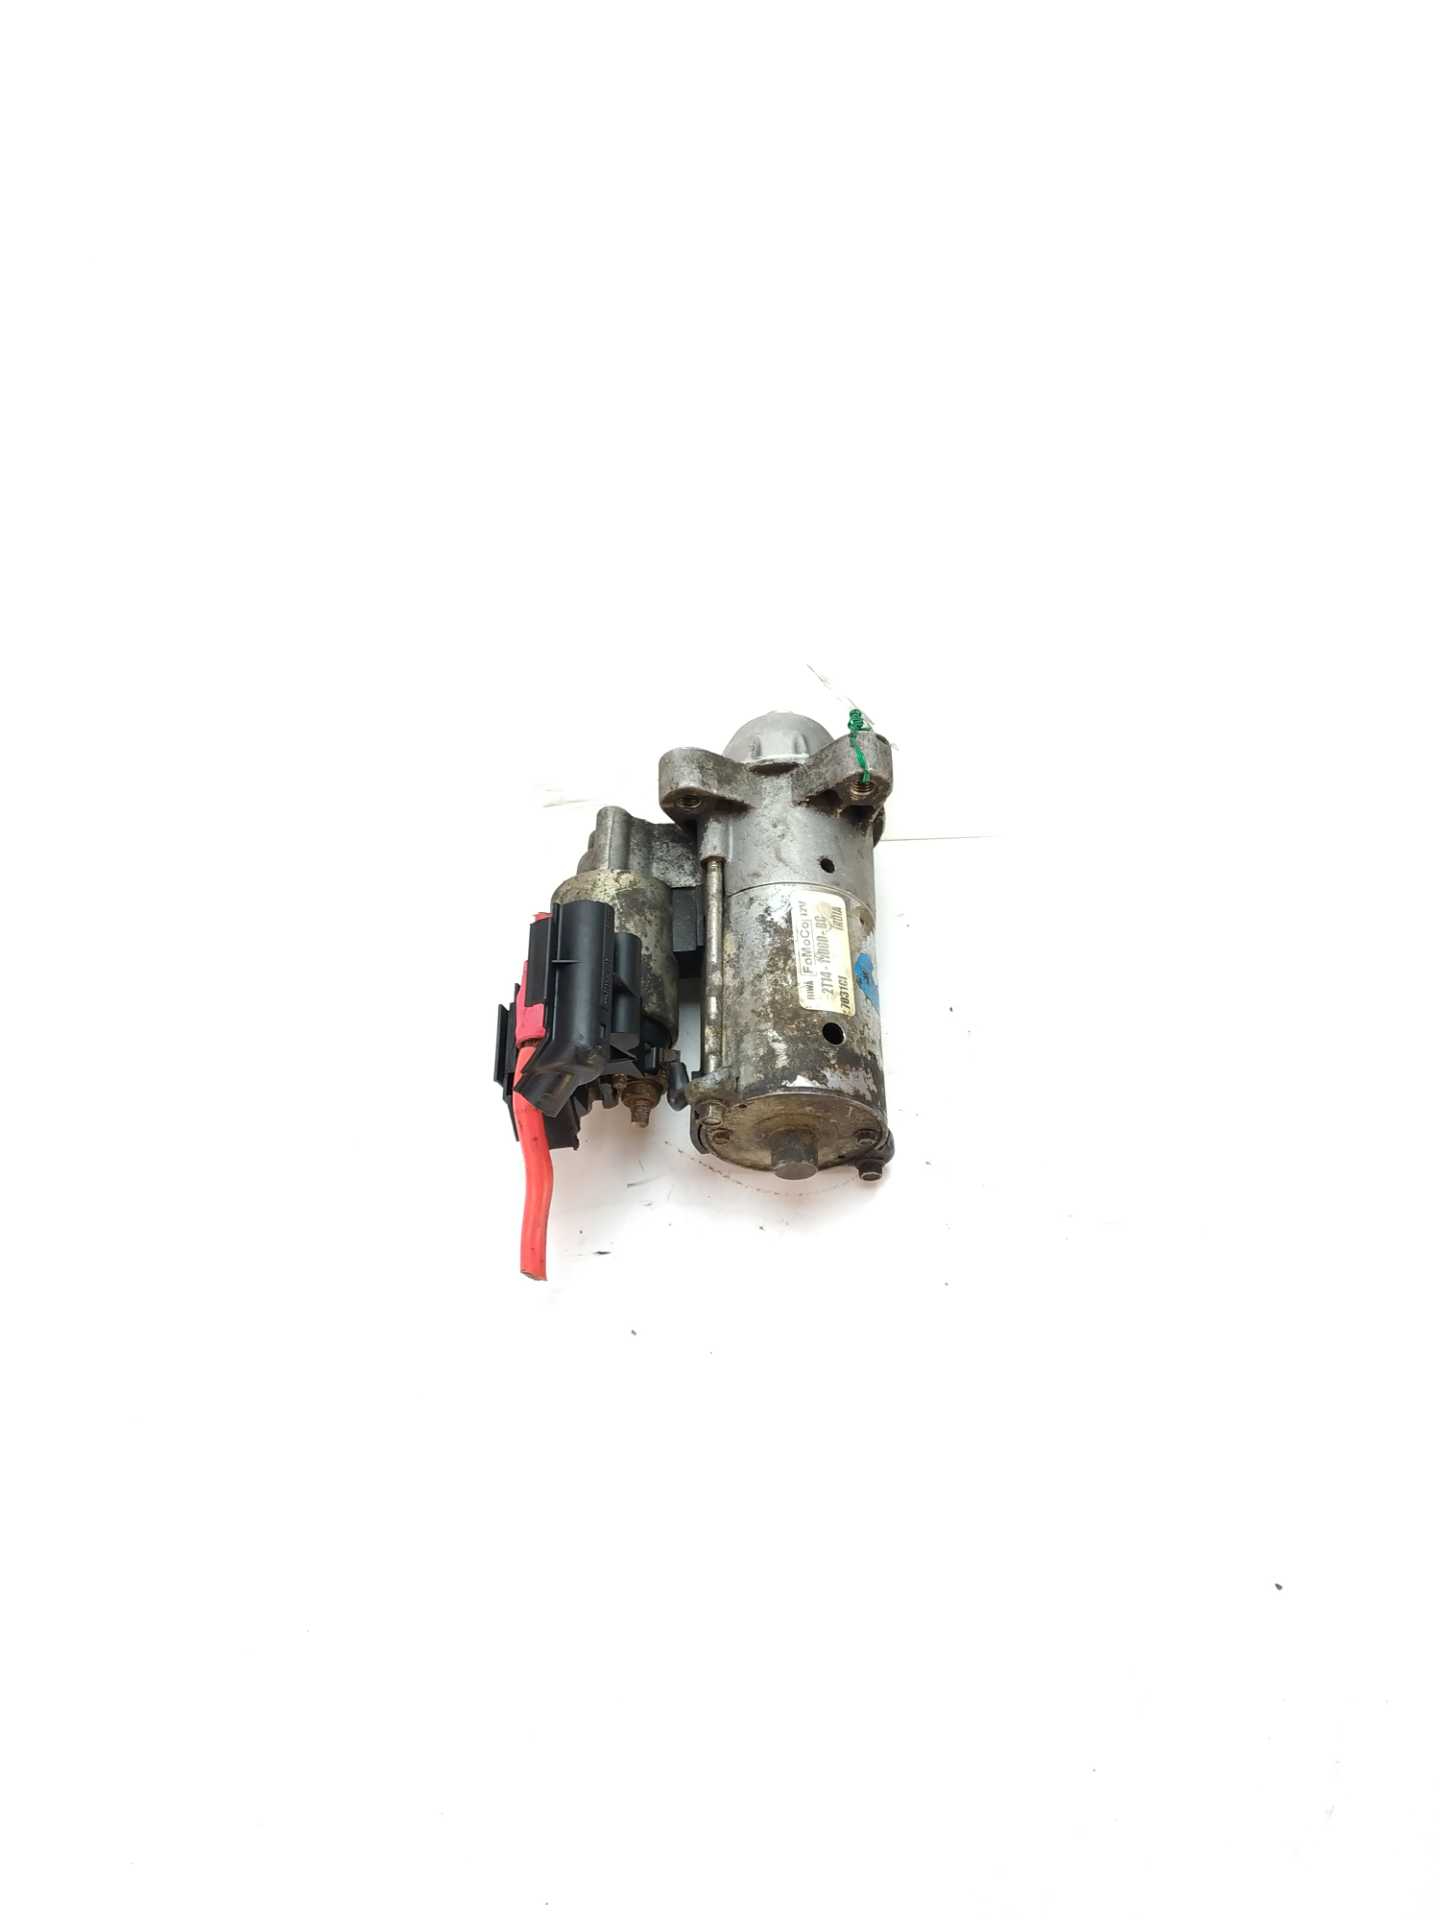 MOTOR ARRANQUE FORD TRANSIT CONNECT 1.8 TDCi (81 KW / 110 CV) (08.2006 - 12.2013)